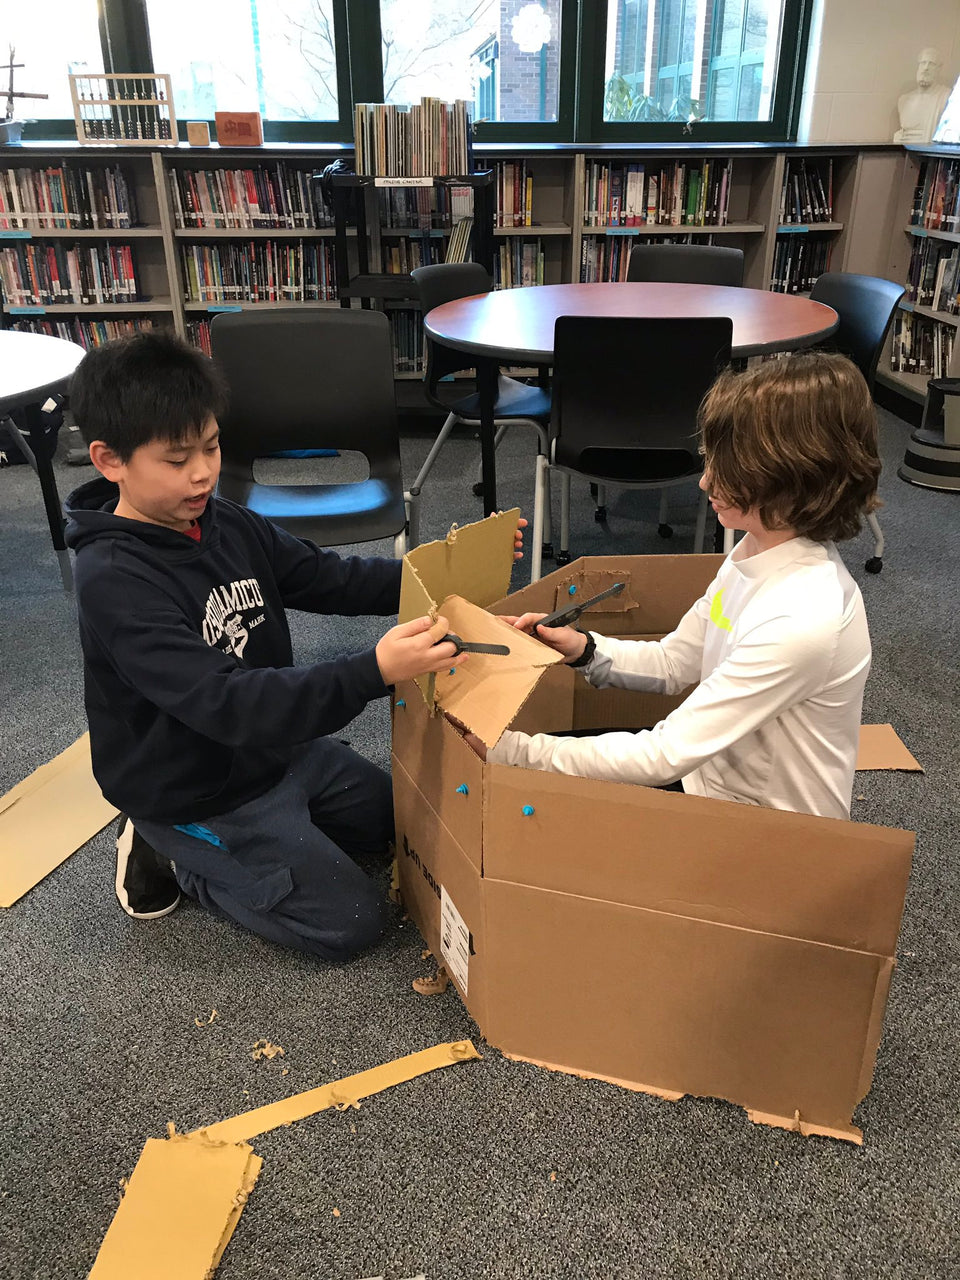 Building a cardboard fort with the Makedo cardboard construction system